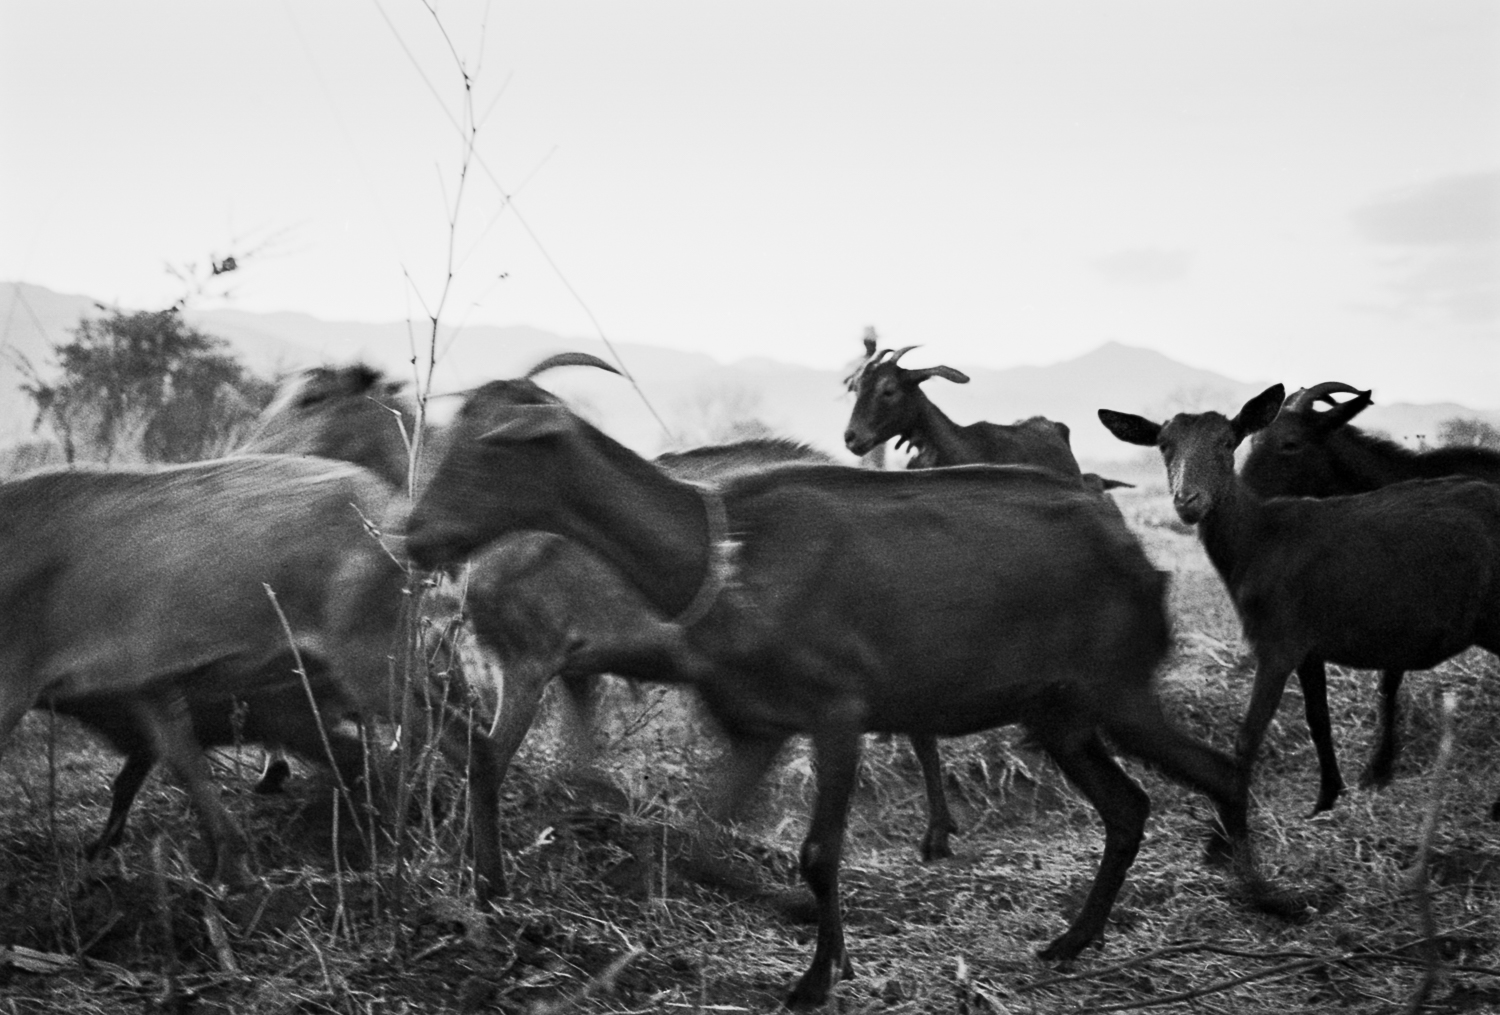 Goat herder on the side of the road Oaxaca, Cuba 2003   Made with Nikon FM camera with Kodak Tri-X 35mm 400 iso b&w film